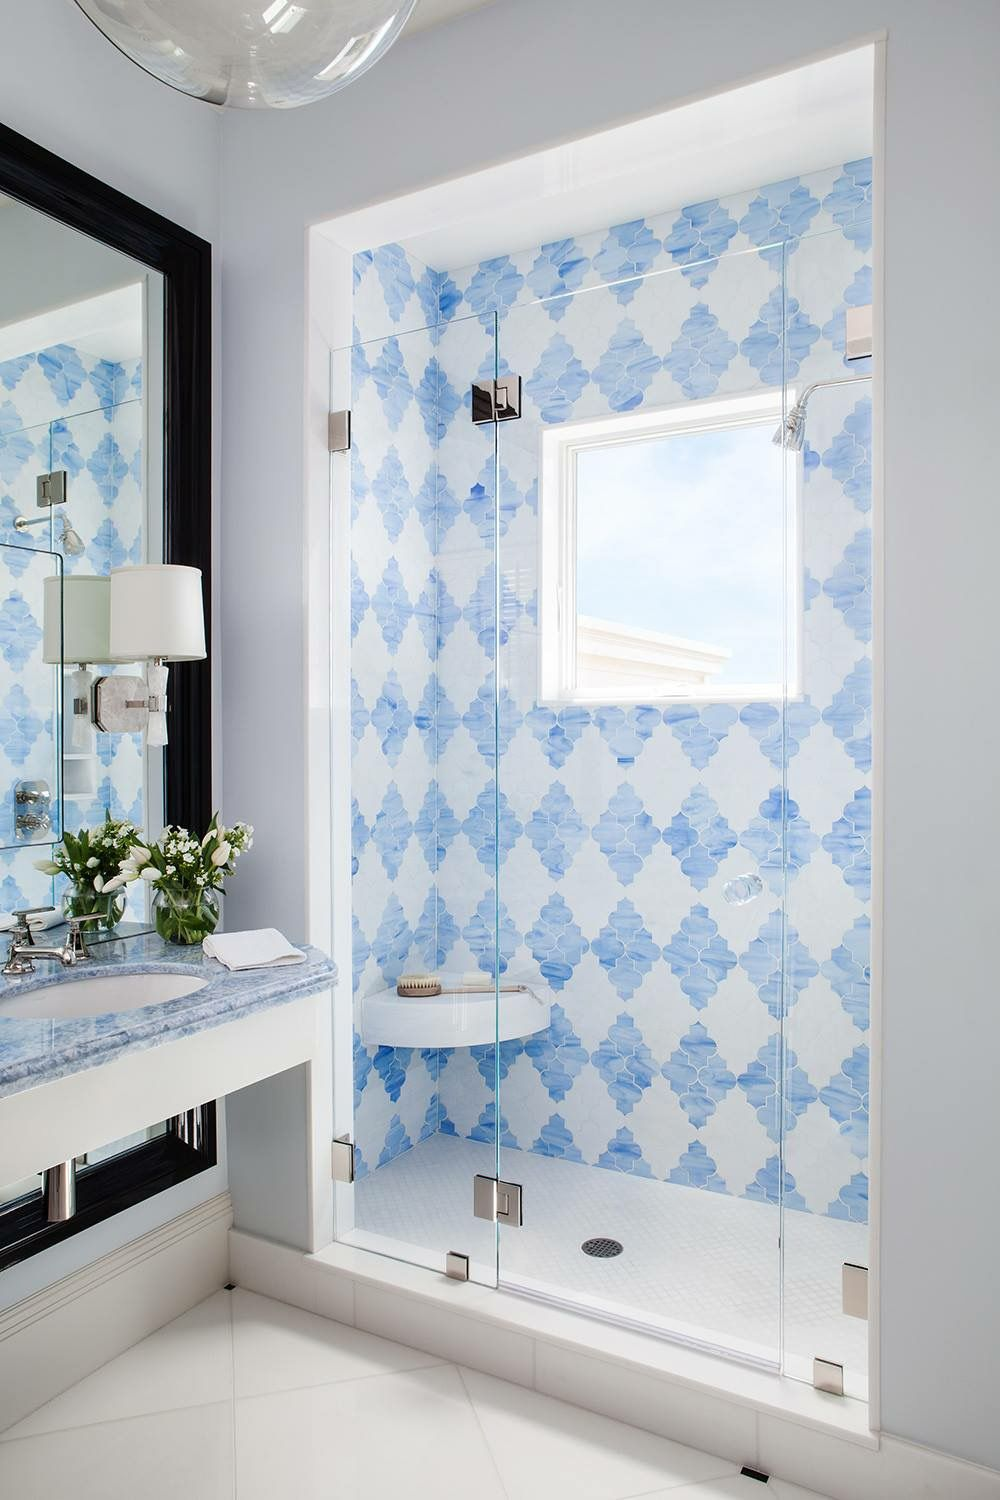 Pin by Jessica Donehower on Master bath | Pinterest | Bath, Upstairs ...